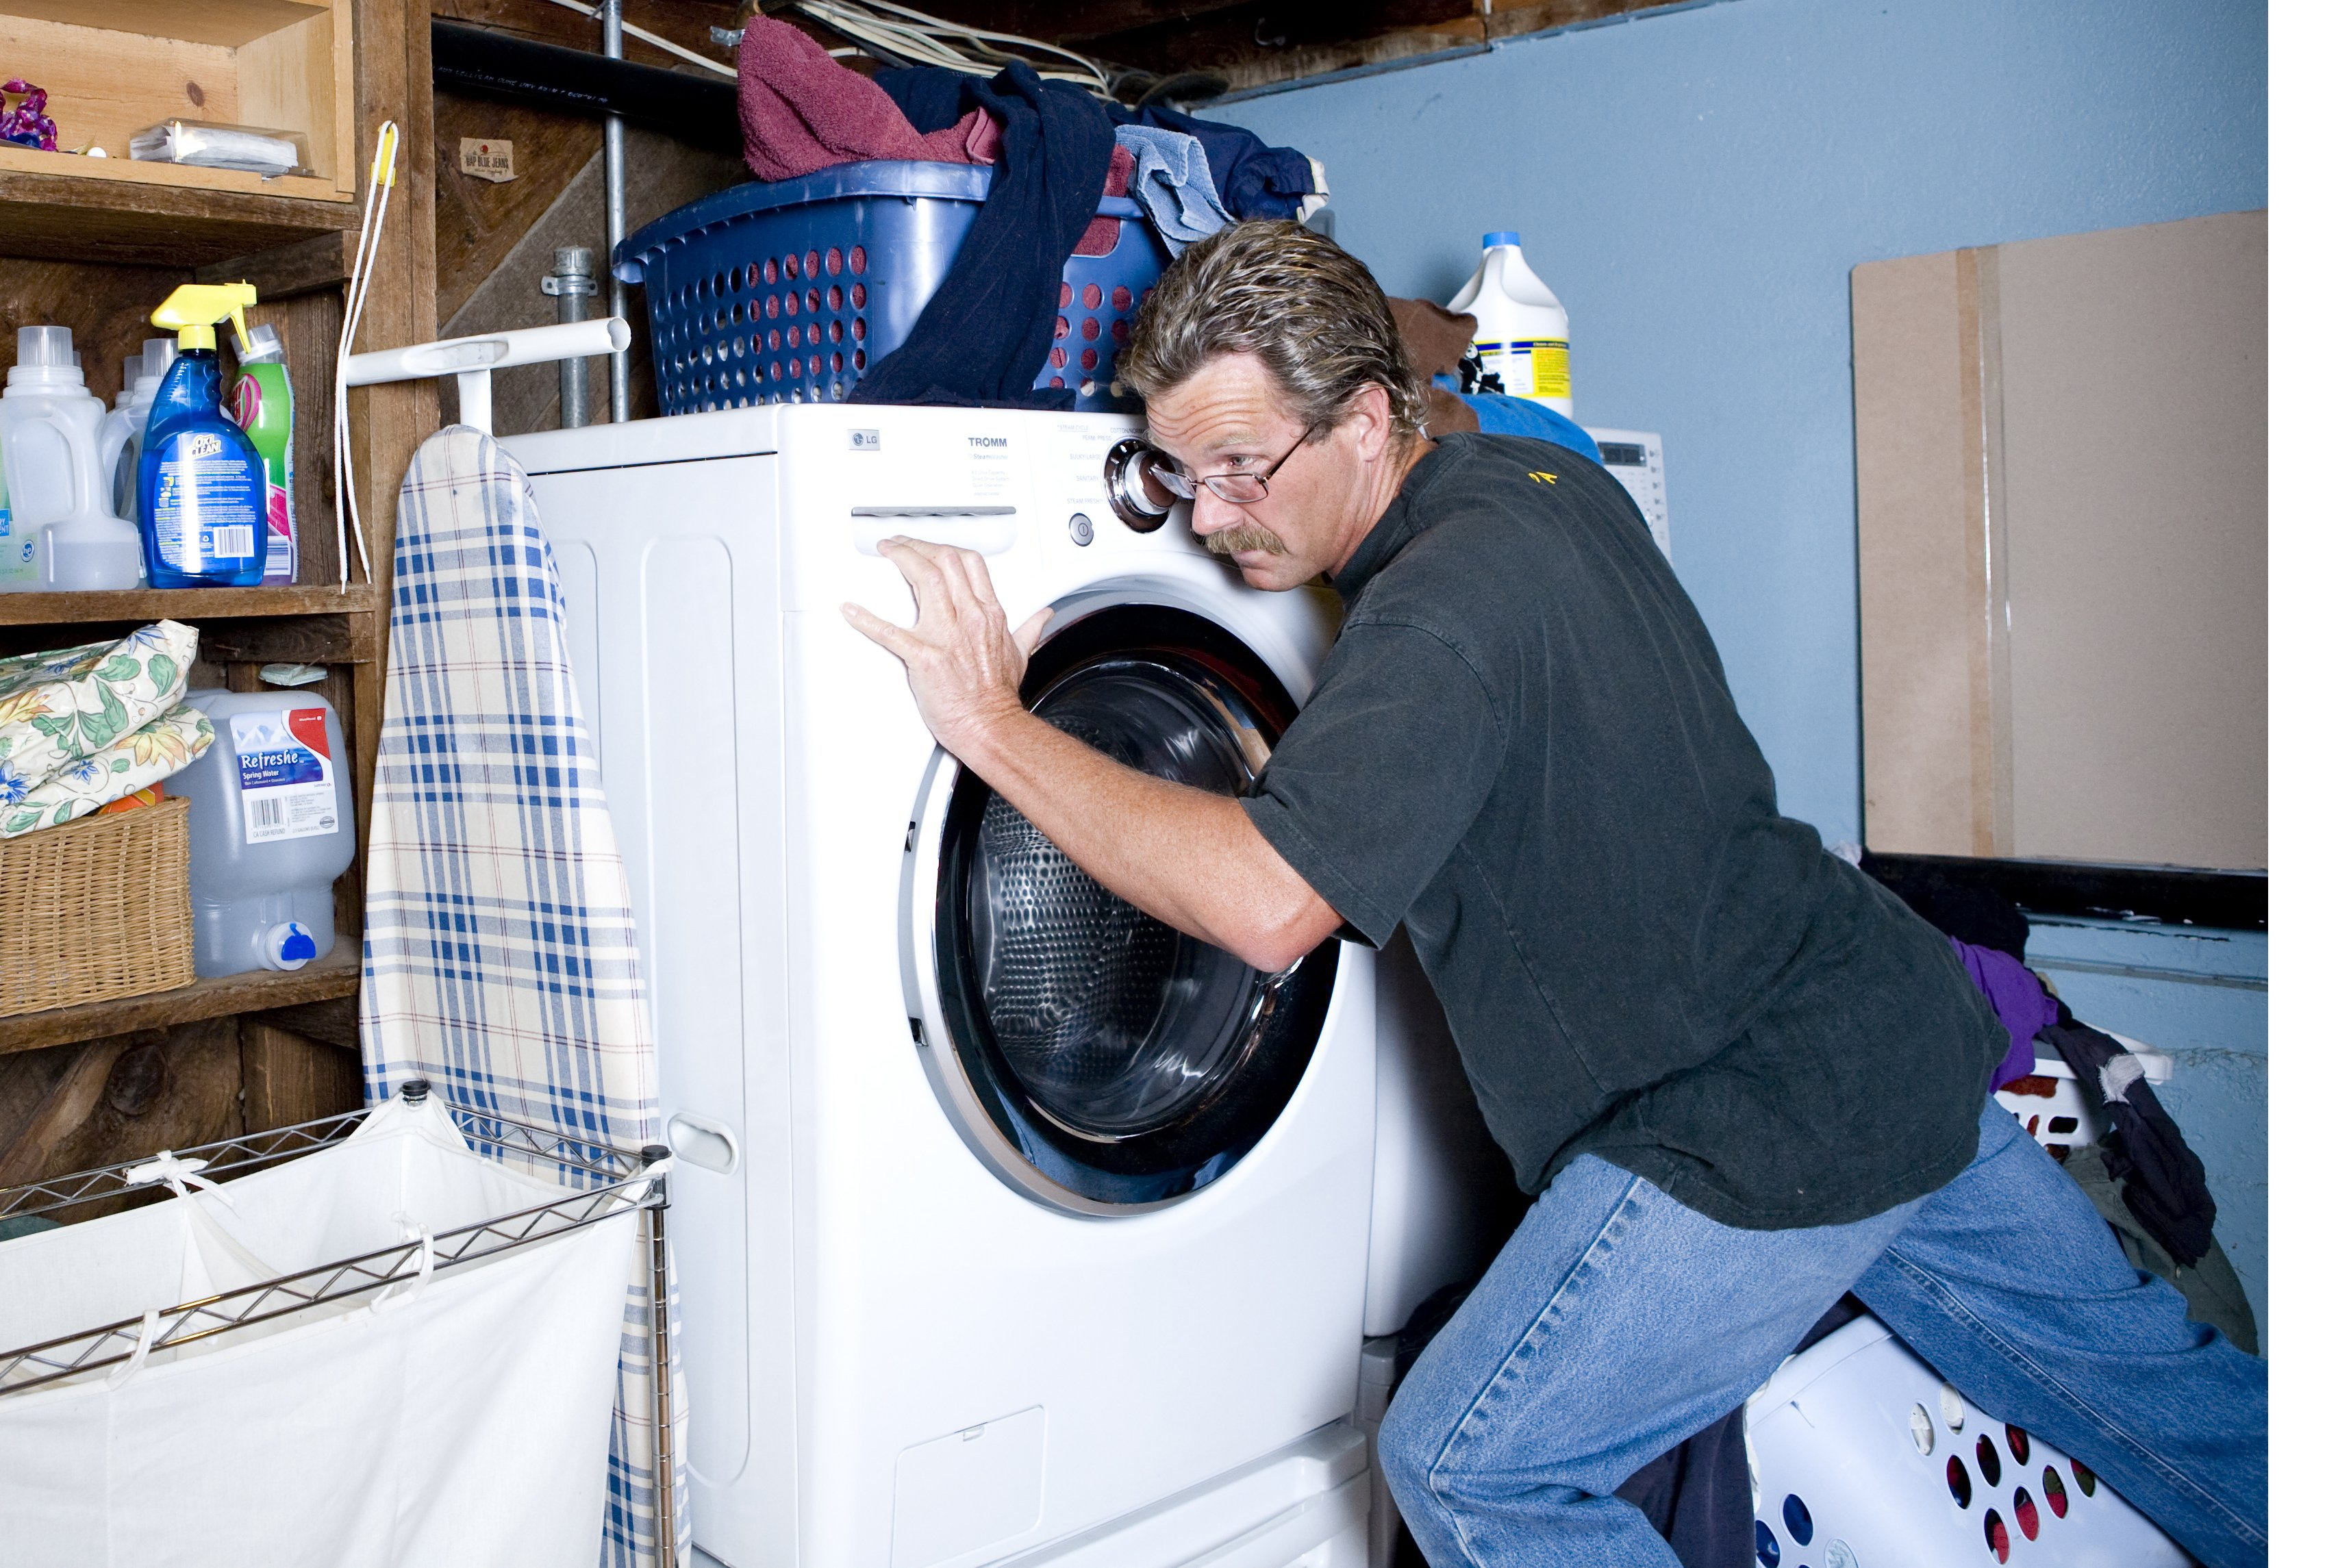 The MakeShift Challenge: Under Siege in a Laundry Room